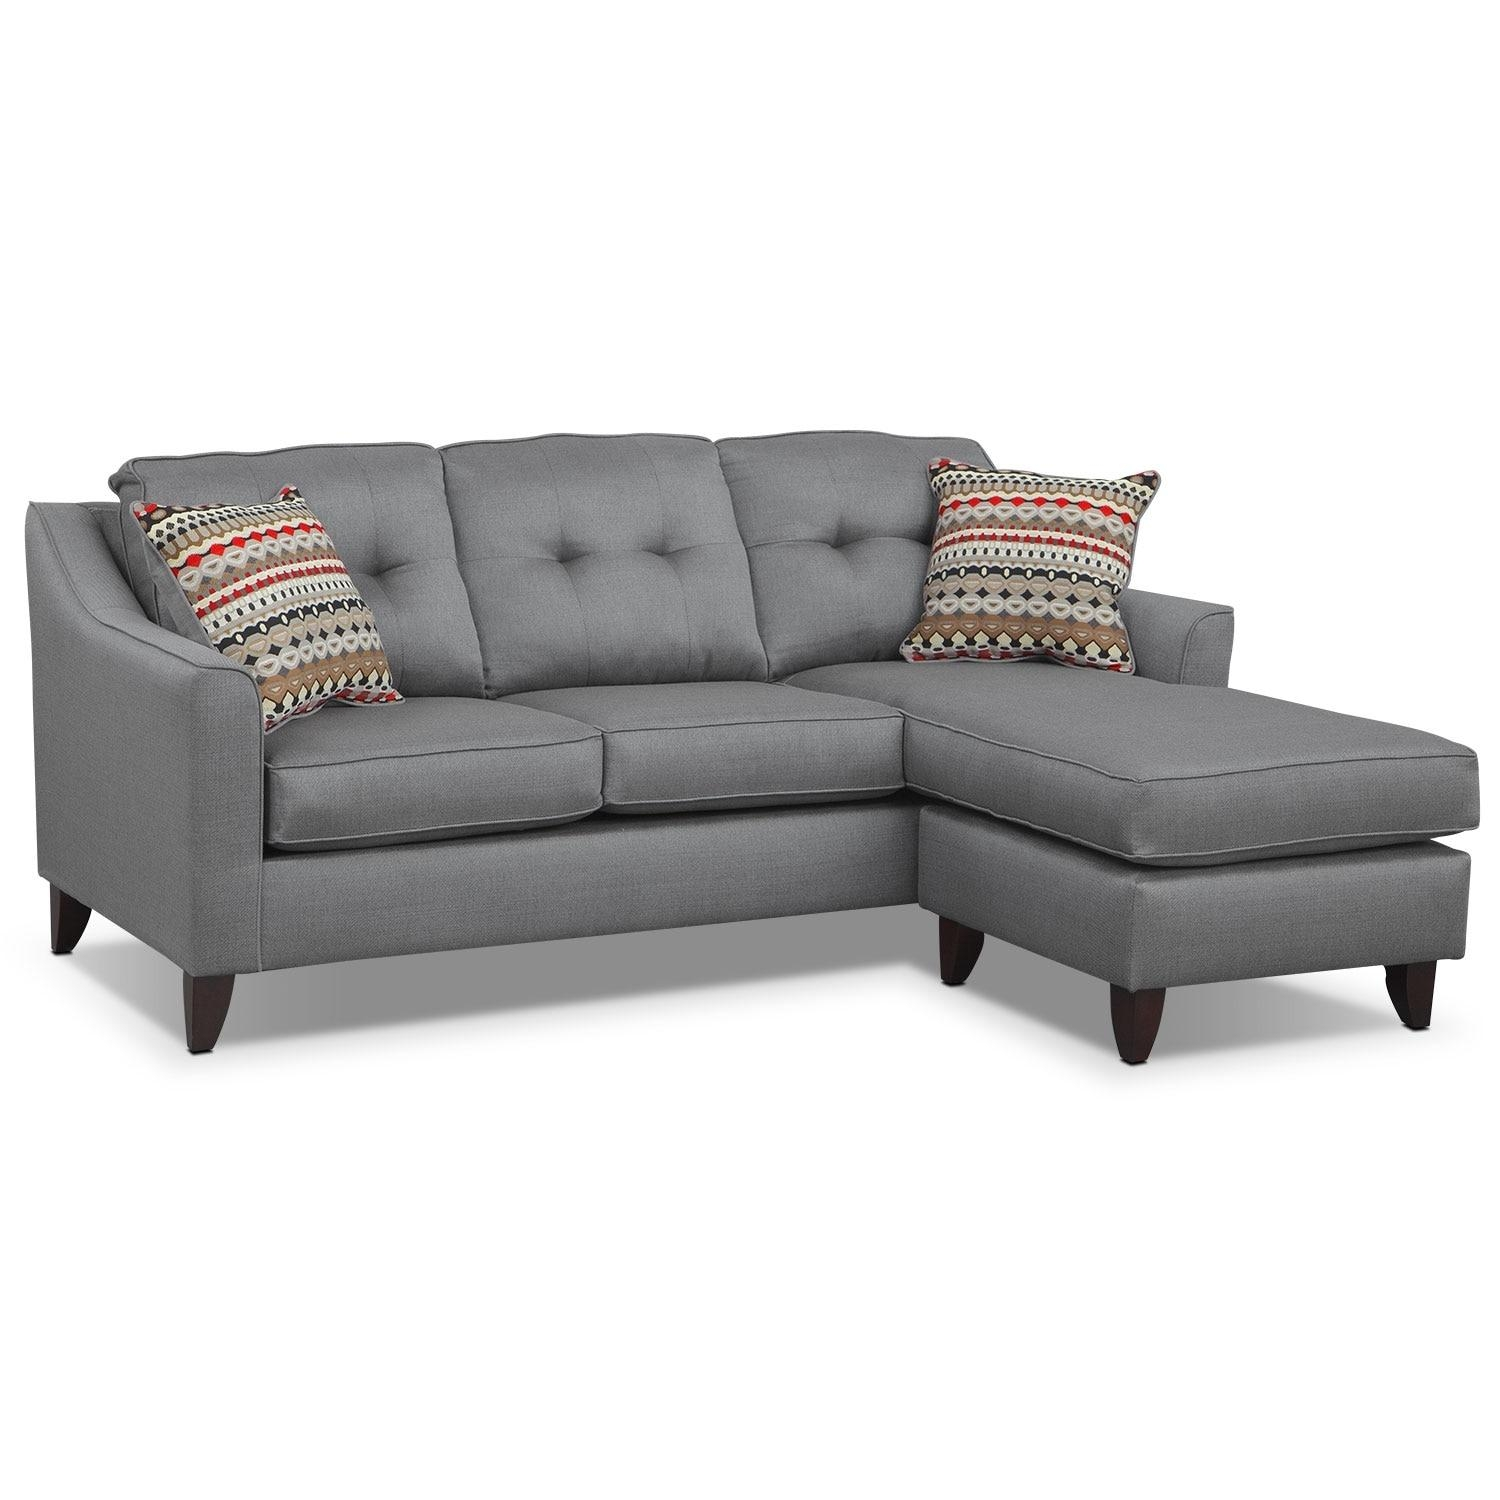 Marco Chaise Sofa And Chair Set – Gray | Value City Furniture Intended For Chaise Sofa Chairs (View 20 of 20)